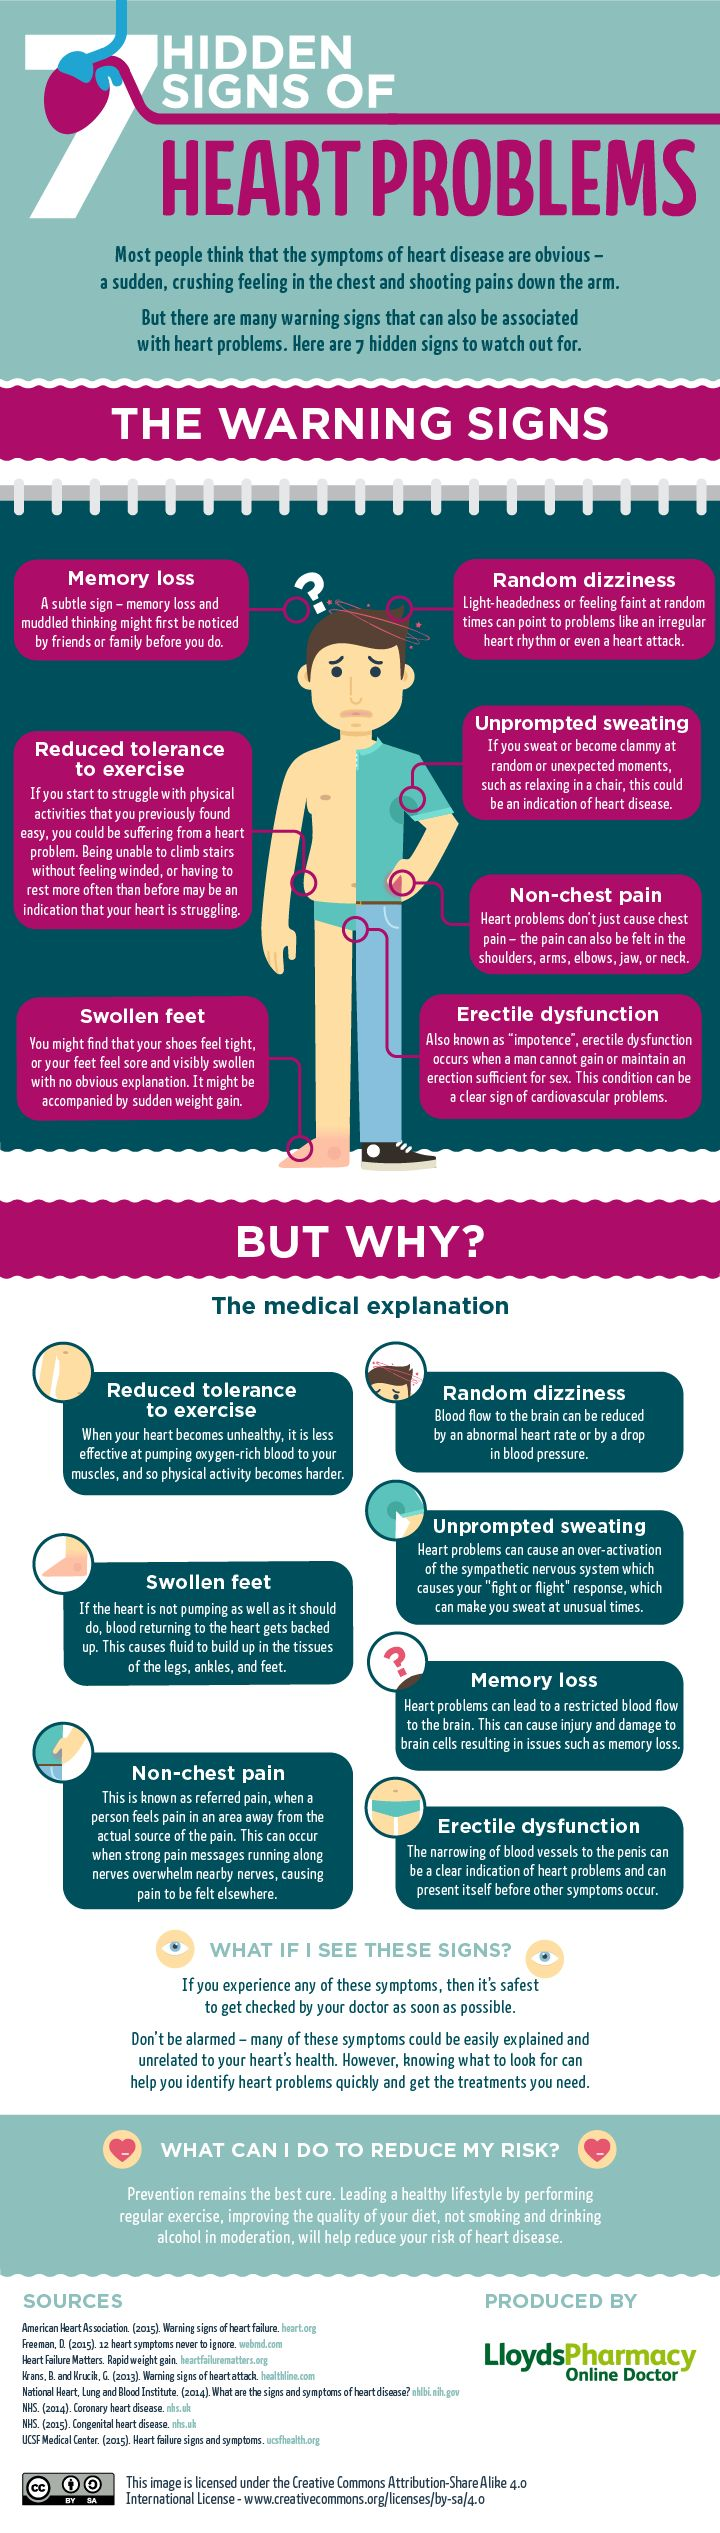 The infographic show us the warning symptoms of heart problems that prompt us to take action and seek medical advice. #hearthealth #infographic